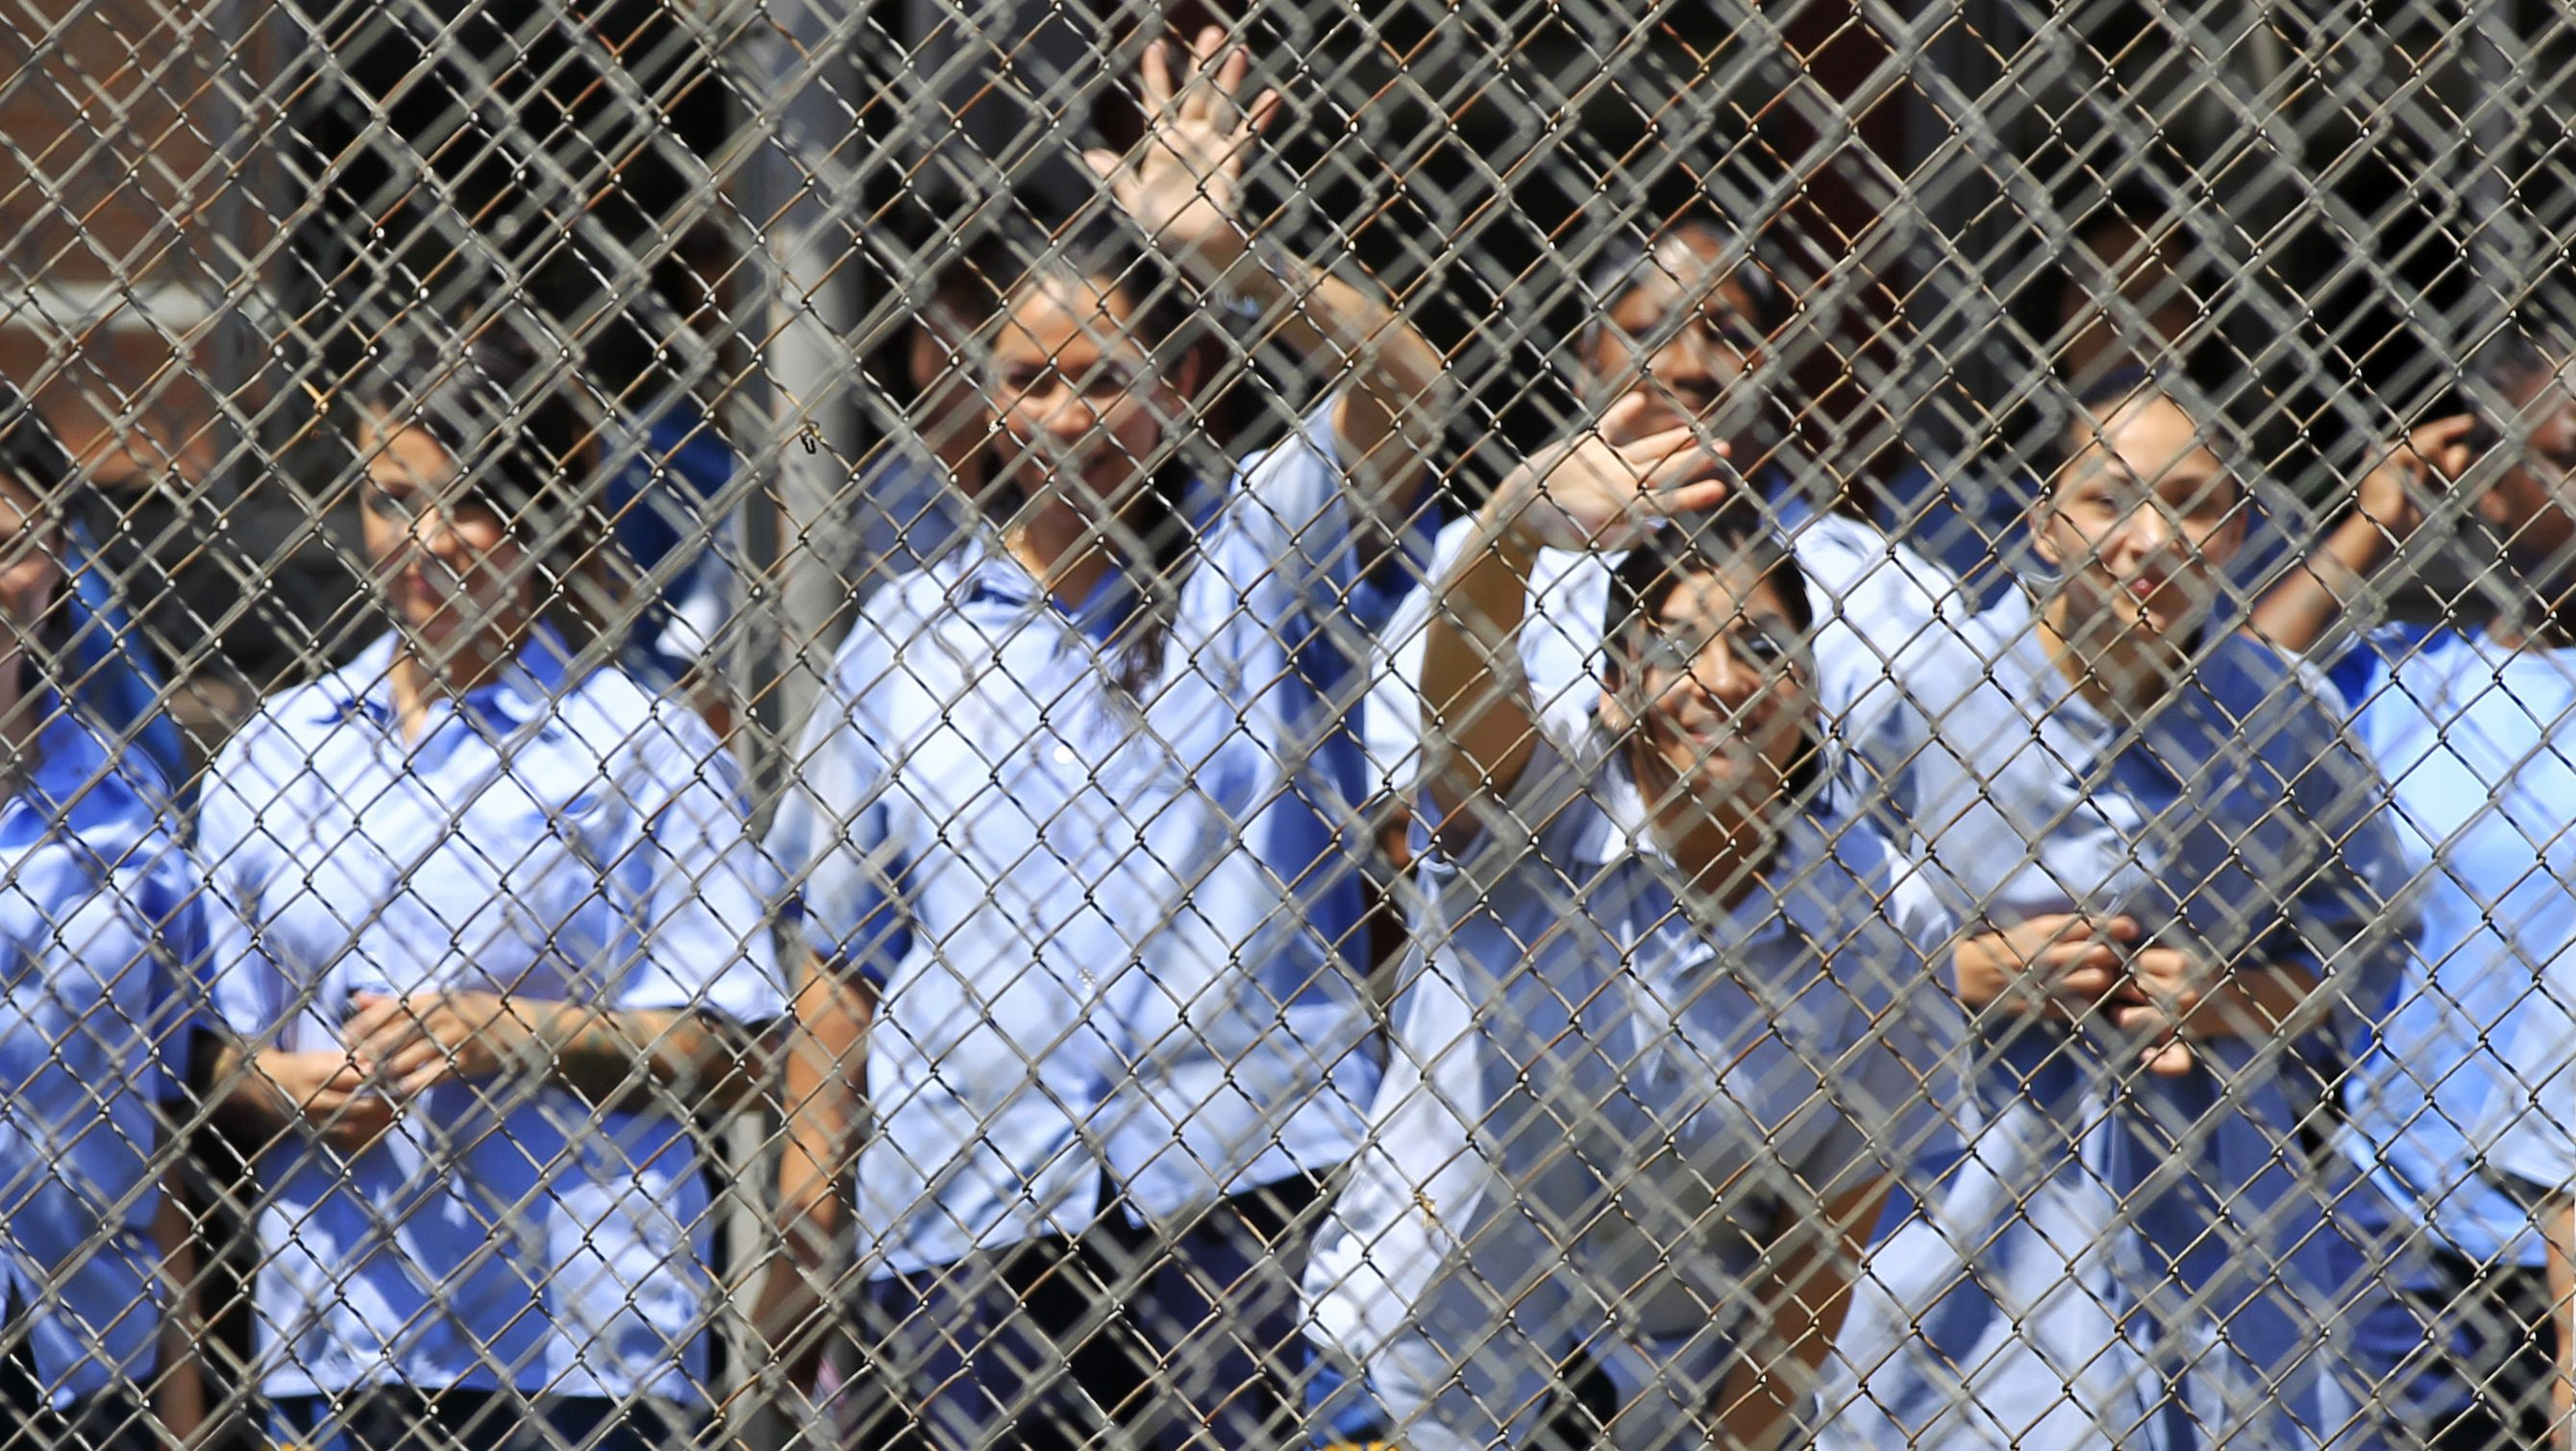 Mothers watch their children arrive to visit at California Institute for Women state prison in Chino, California May 5, 2012.  An annual Mother's Day event, Get On The Bus, brings children in California to visit their mothers in prison. Sixty percent of parents in state prison report being held over 100 miles (161 km) from their children.  Picture taken May 5, 2012          REUTERS/Lucy Nicholson (UNITED STATES - Tags: CRIME LAW SOCIETY) ATTENTION EDITORS PICTURE 01 OF 28 FOR PACKAGE 'MOTHER'S DAY BEHIND BARS' - RTR31WCK